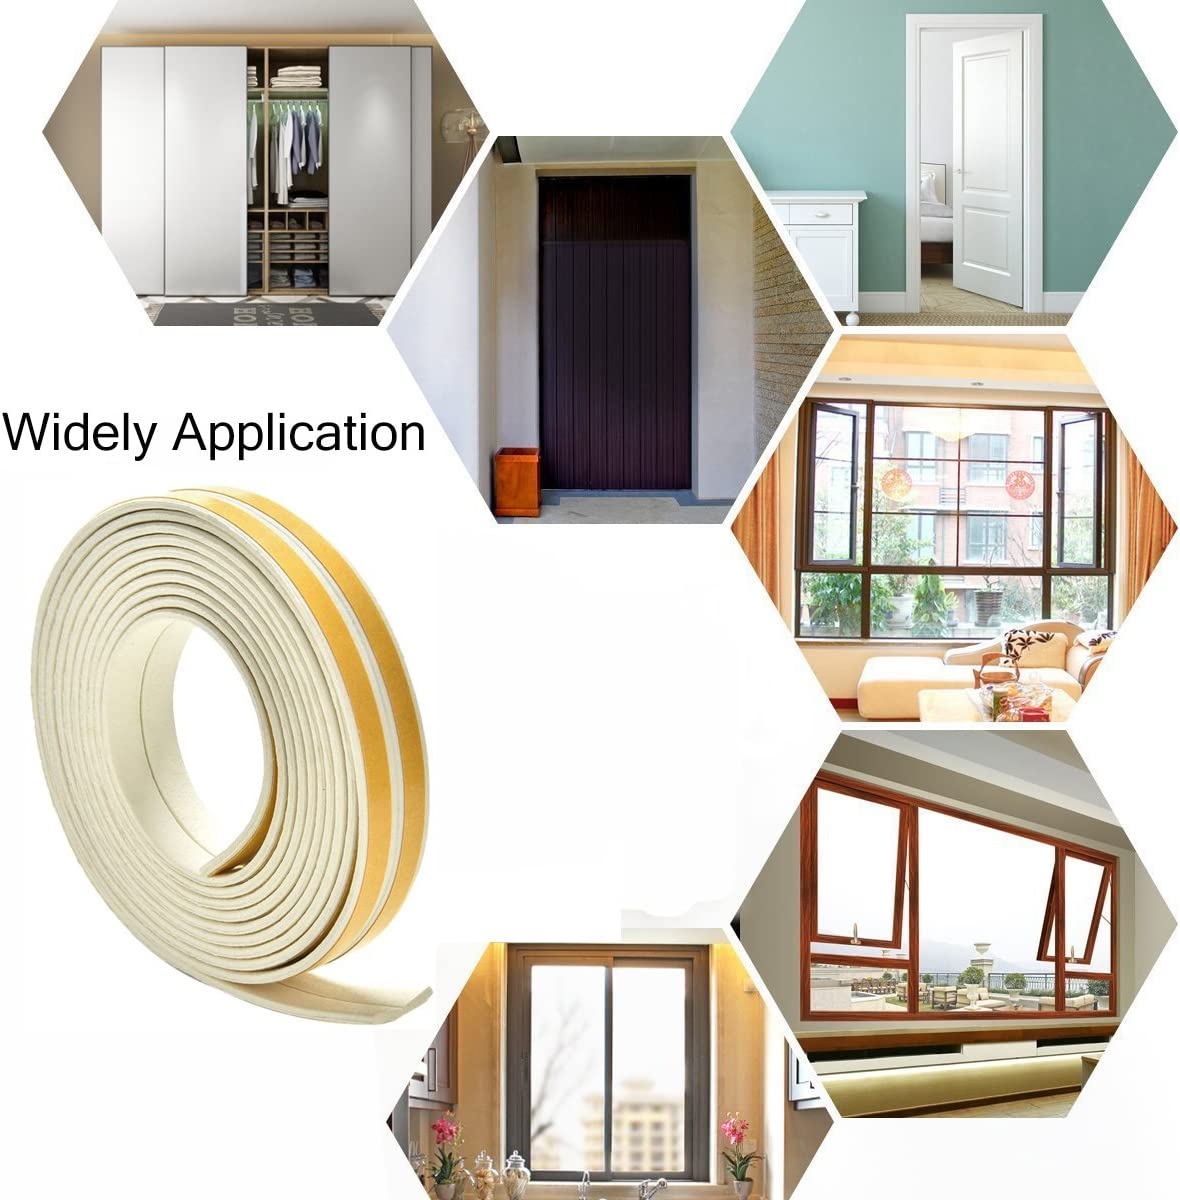 E type, White Bro Door Window Draught Excluder Strip Foam Seal Weather Stripping EPDM Tape Adhesive Rubber Soundproofing Weatherstrip 9mm x 4mm x 3 Meters 4 Seals Total 12M 2 Pack